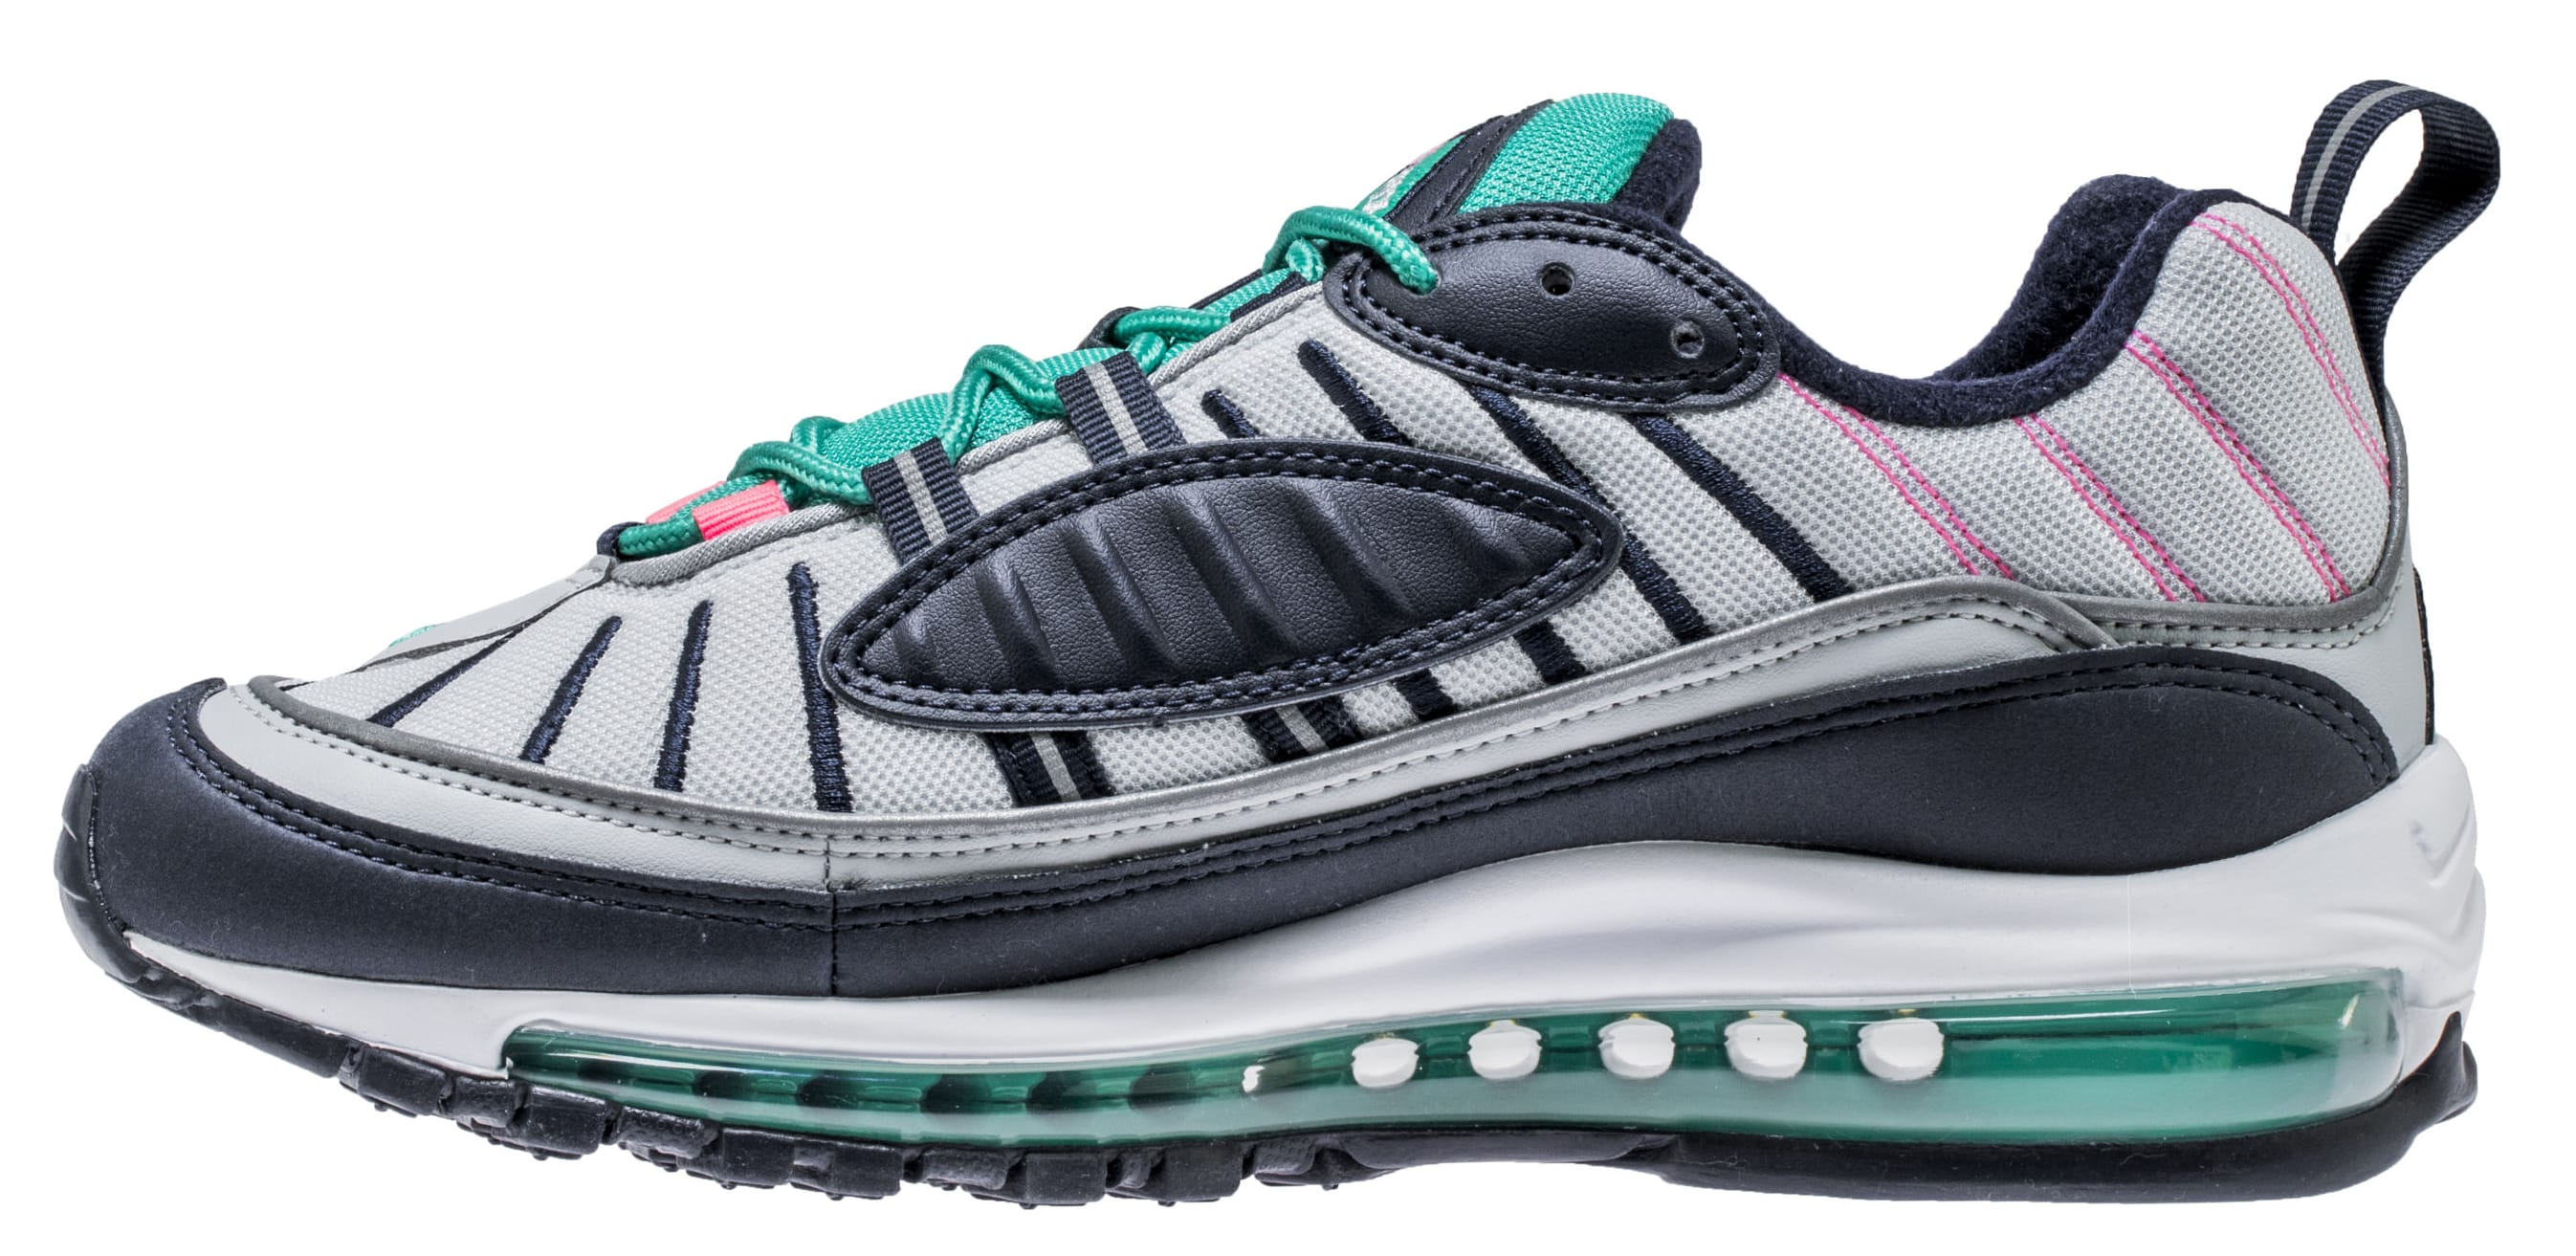 Nike Air Max 98 'Pure Platinum/Obsidian/Kinetic Green' 640744-005 (Medial)